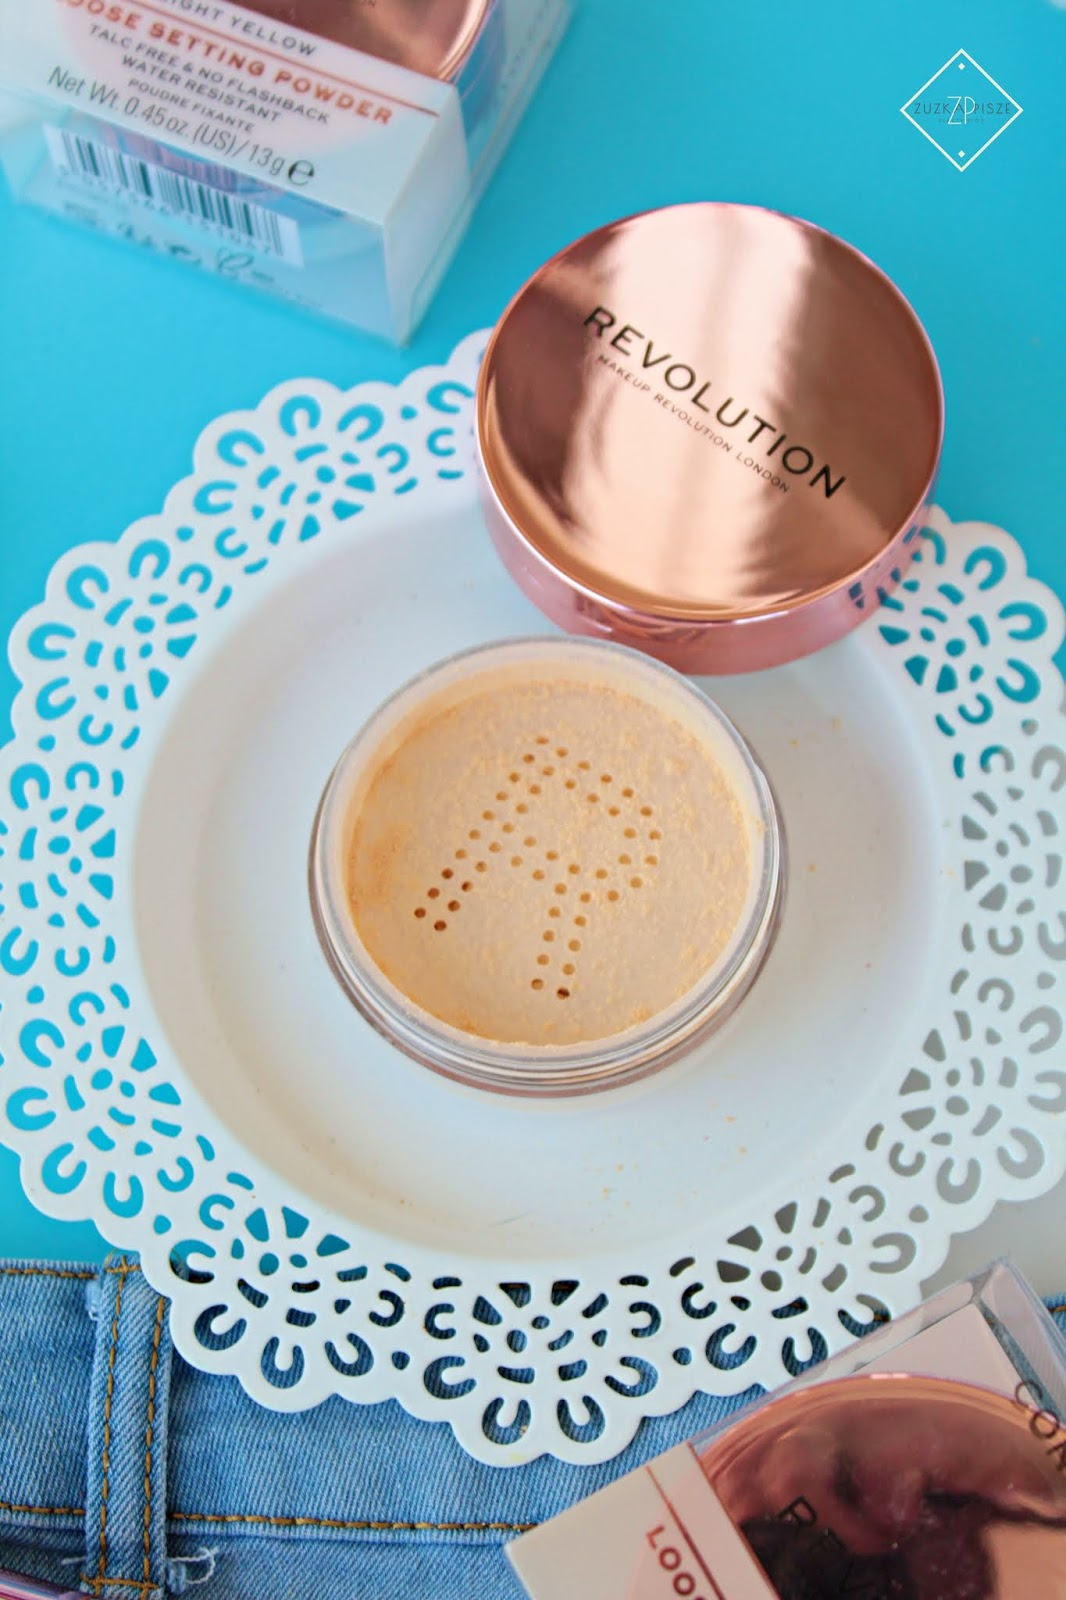 Makeup Revolution Conceal & Fix Loose Setting Powder